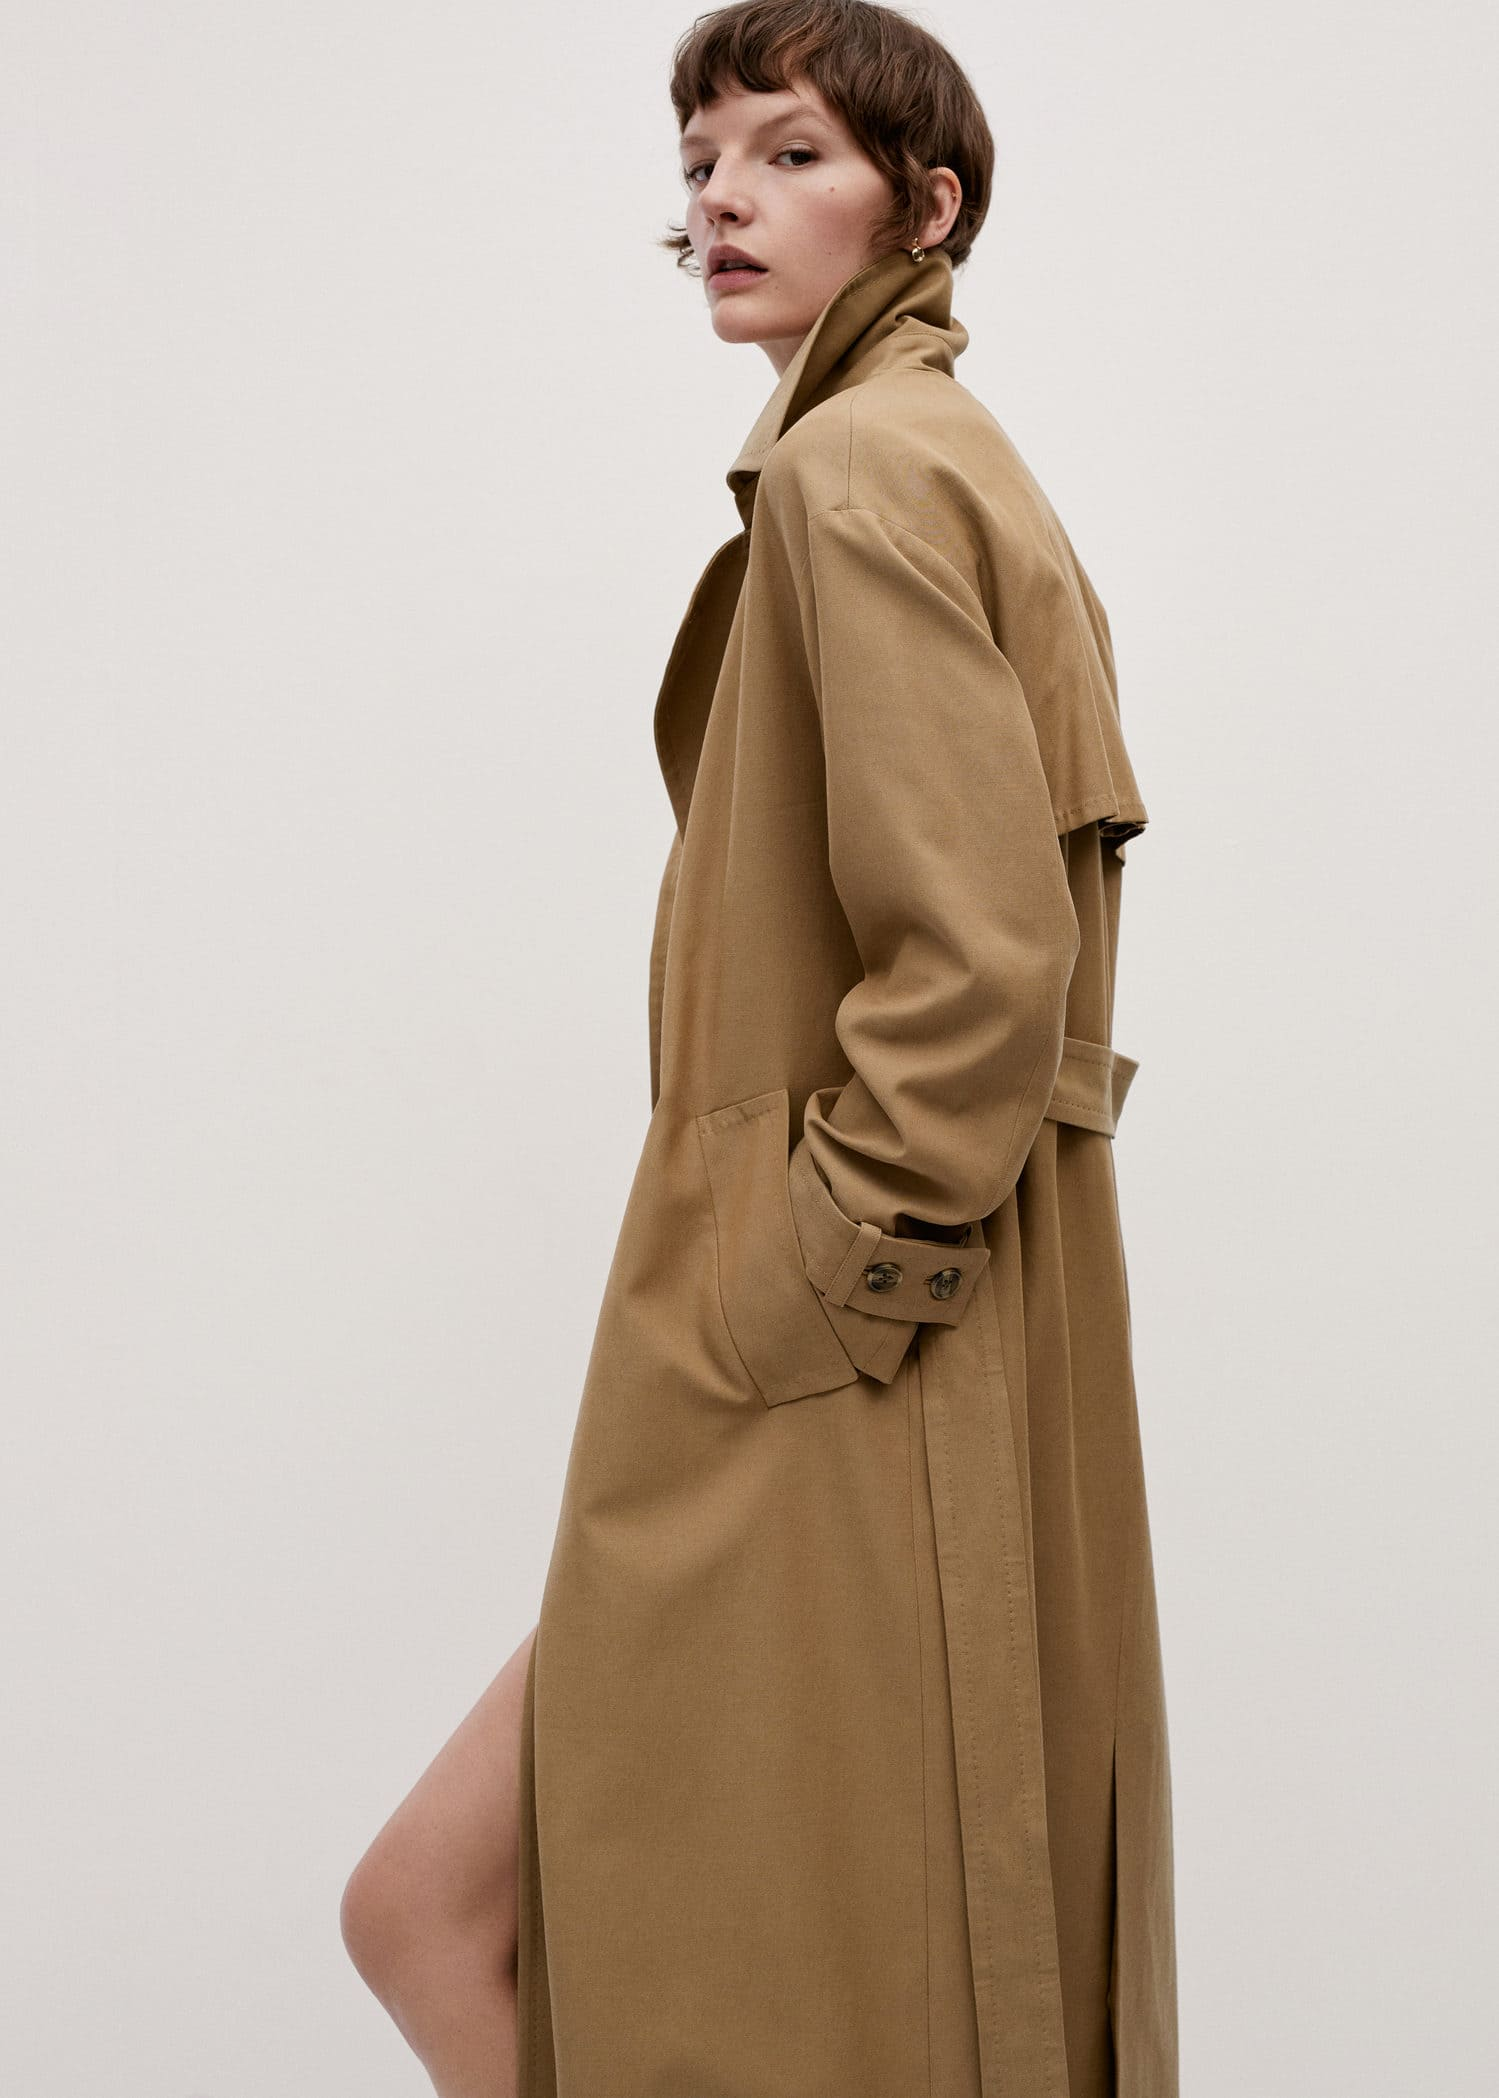 Cotton trench coat in tobacco brown M